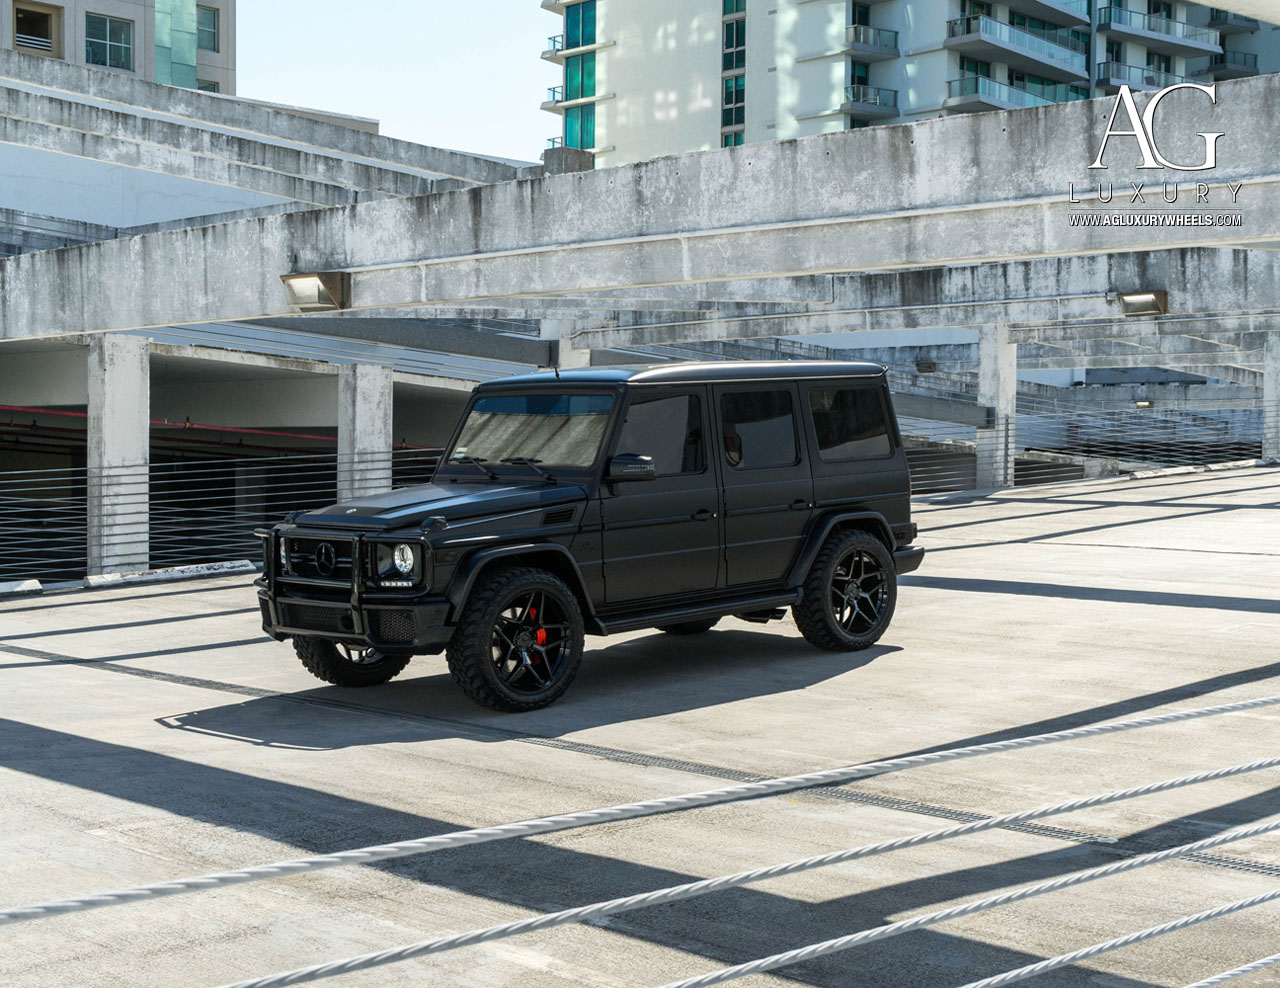 Ag luxury wheels mercedes benz g63 amg forged wheels for Mercedes benz g wagon black matte